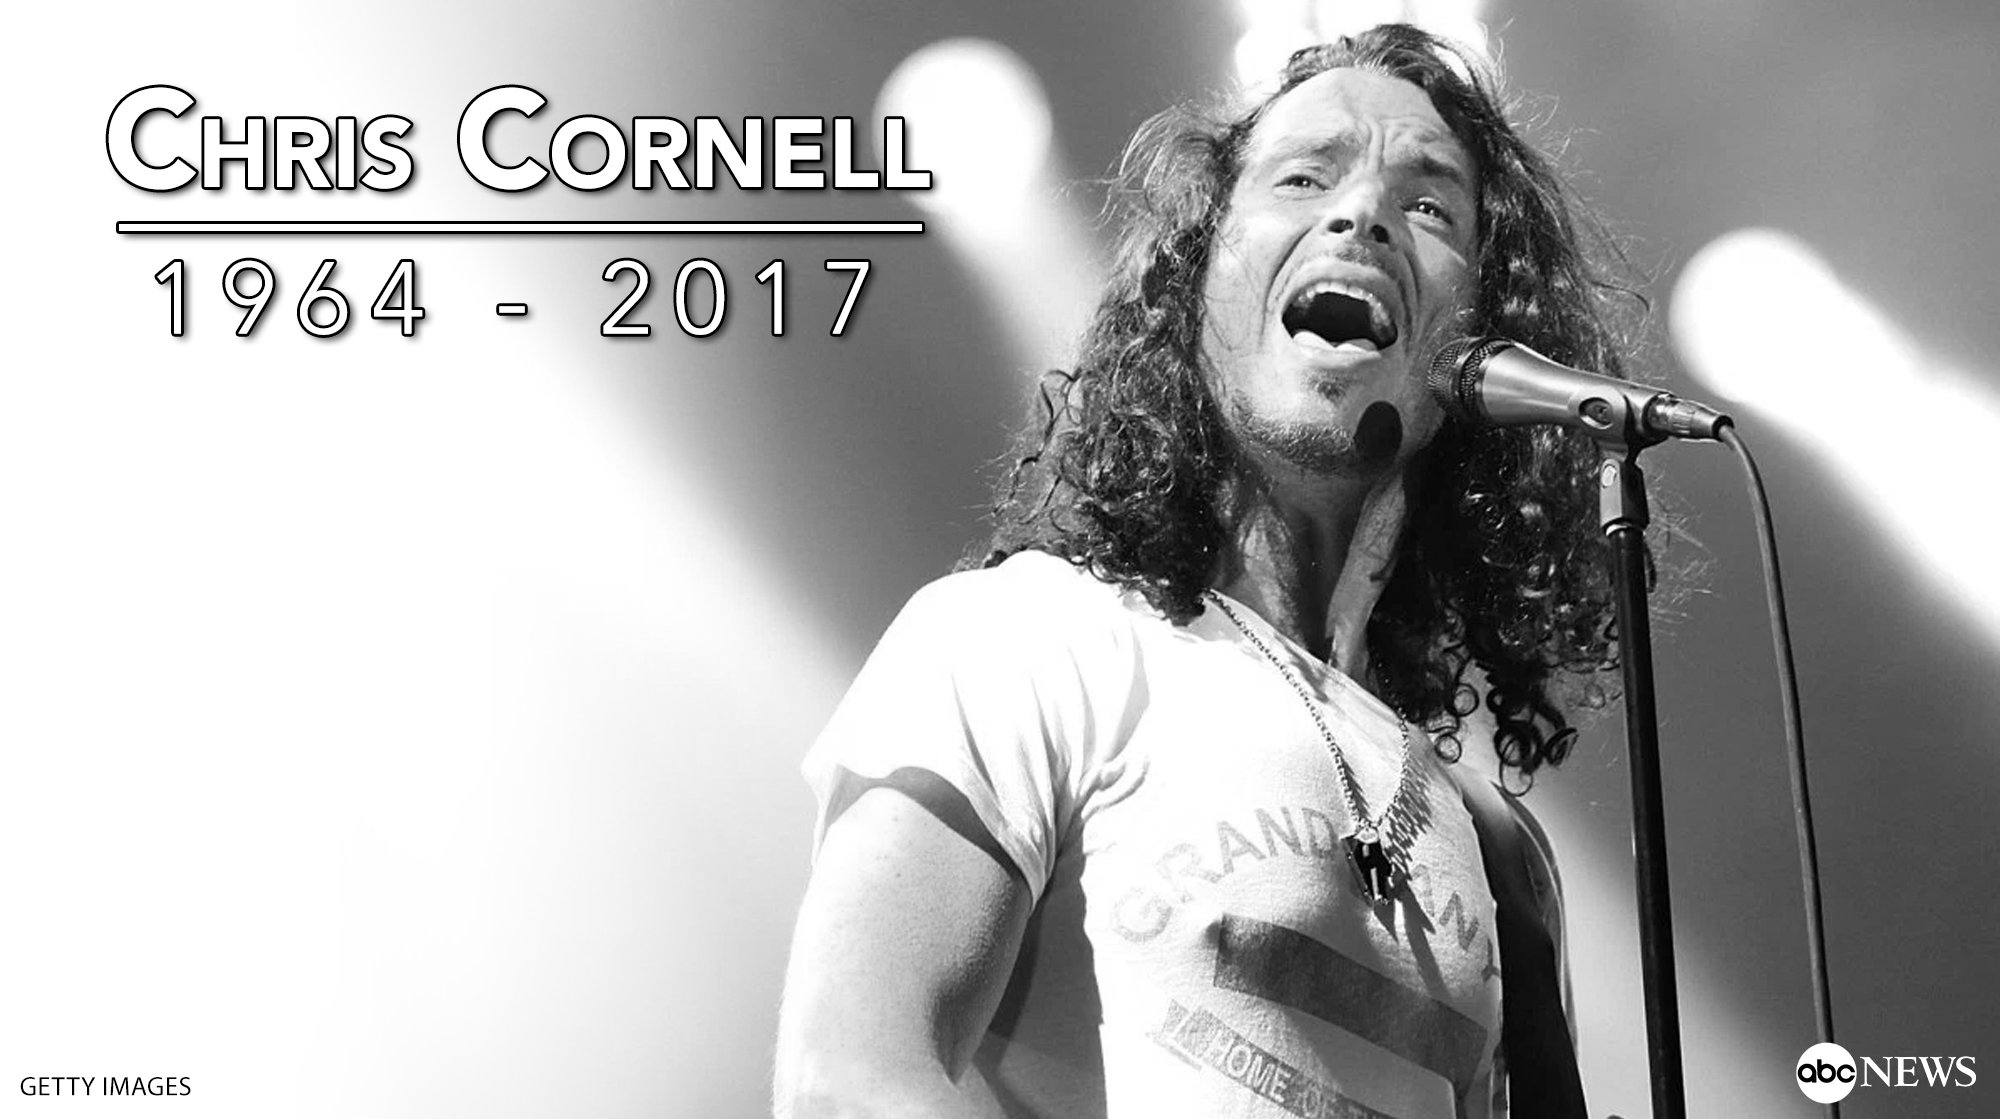 Soundgarden, Audioslave frontman Chris Cornell dead at 52: https://t.co/QSbEU0pTDh https://t.co/axa1TKL48K